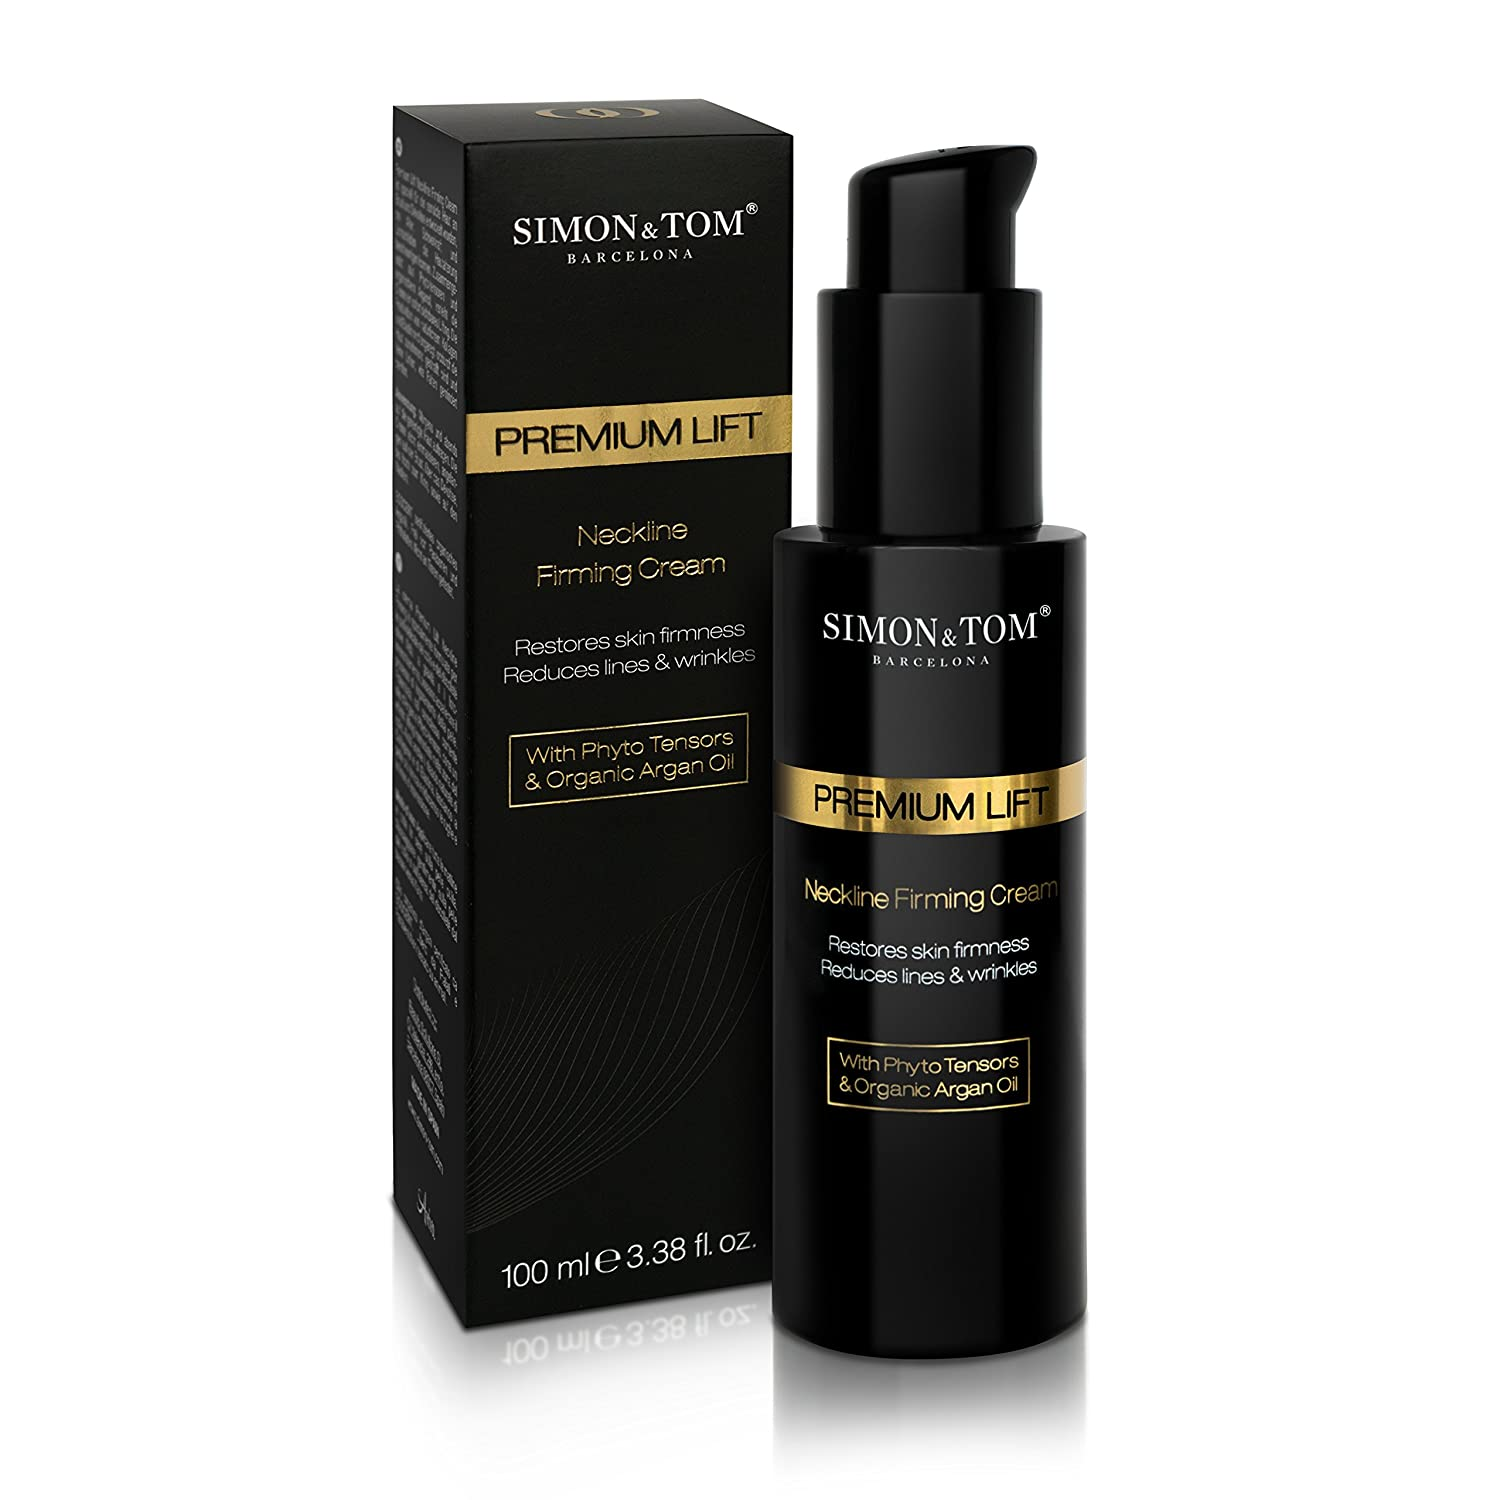 Simon & Tom Premium Lift Neckline Firming Cream - Firming & Lifting Sagging Skin on Neck and Décolleté with Argan Oil & Firming Phyto-Tensors -Smooths Fine Lines & Wrinkles 100ml / 3.38 fl.oz.